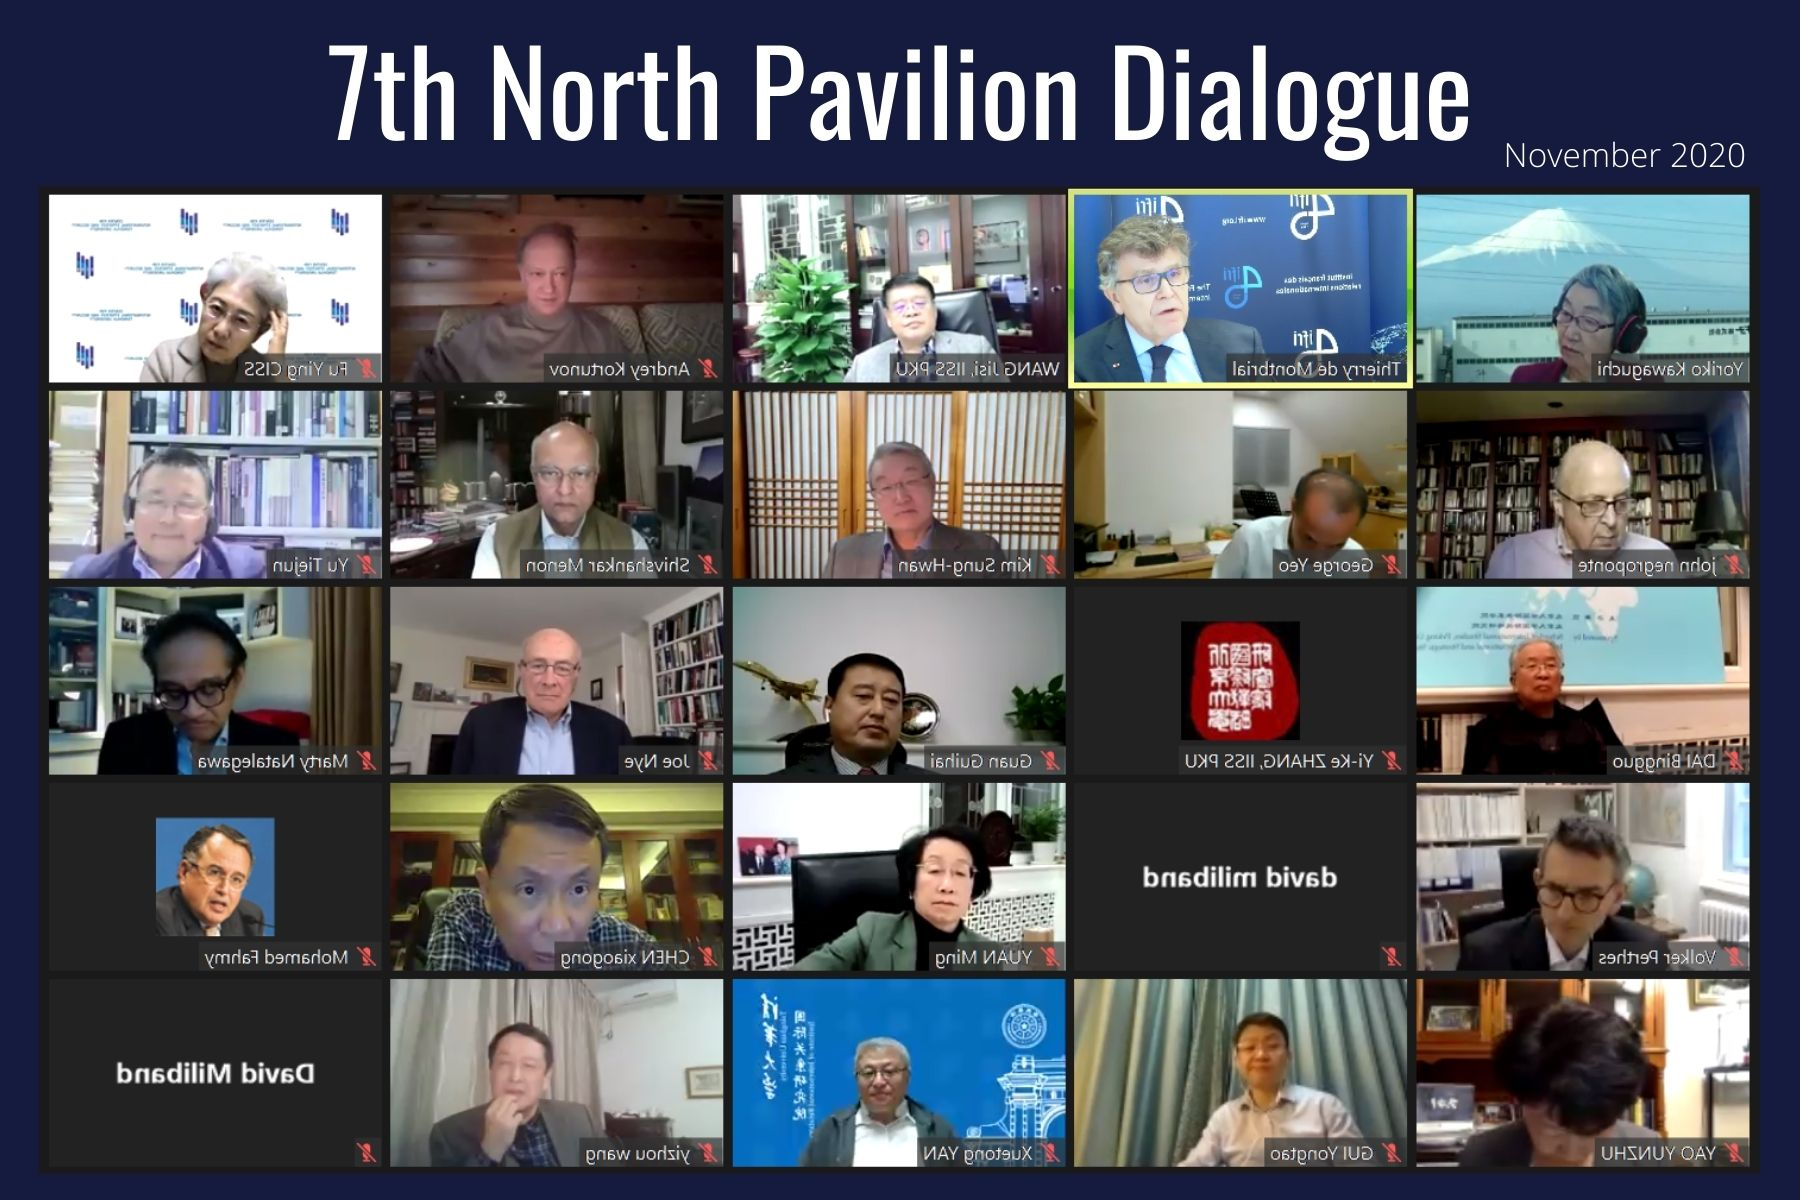 north pavilion dialogue visio conference